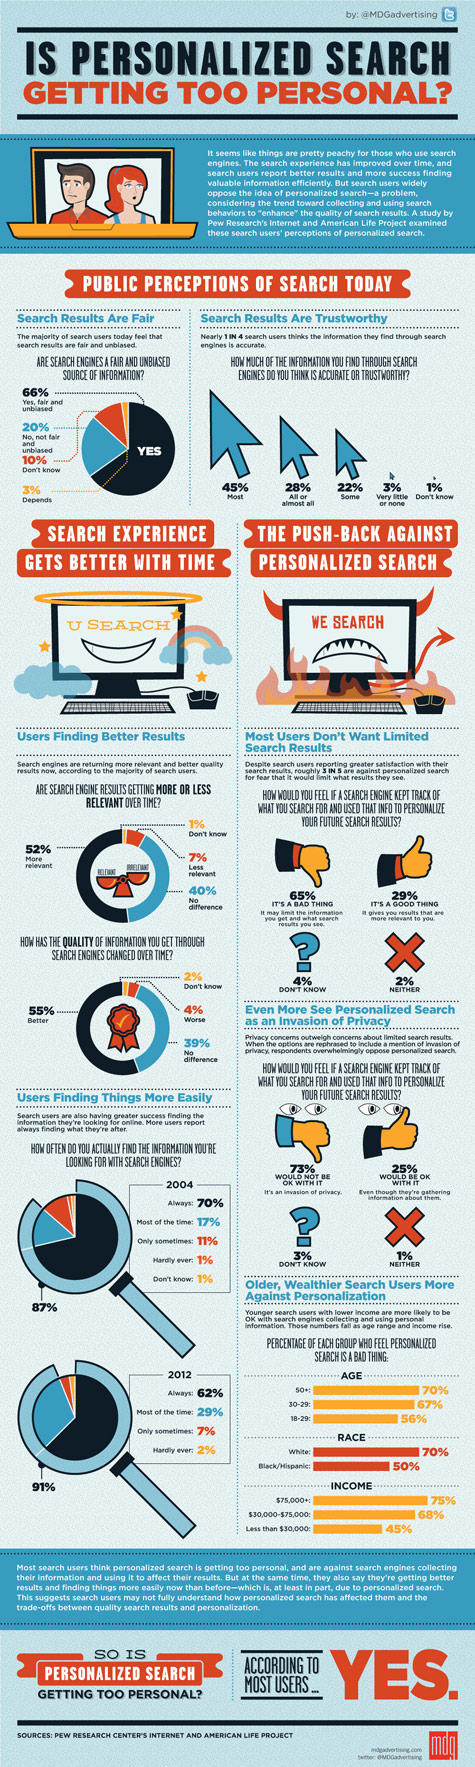 Is Personalized Search Getting Too Personal [infographic by MDG Advertising]